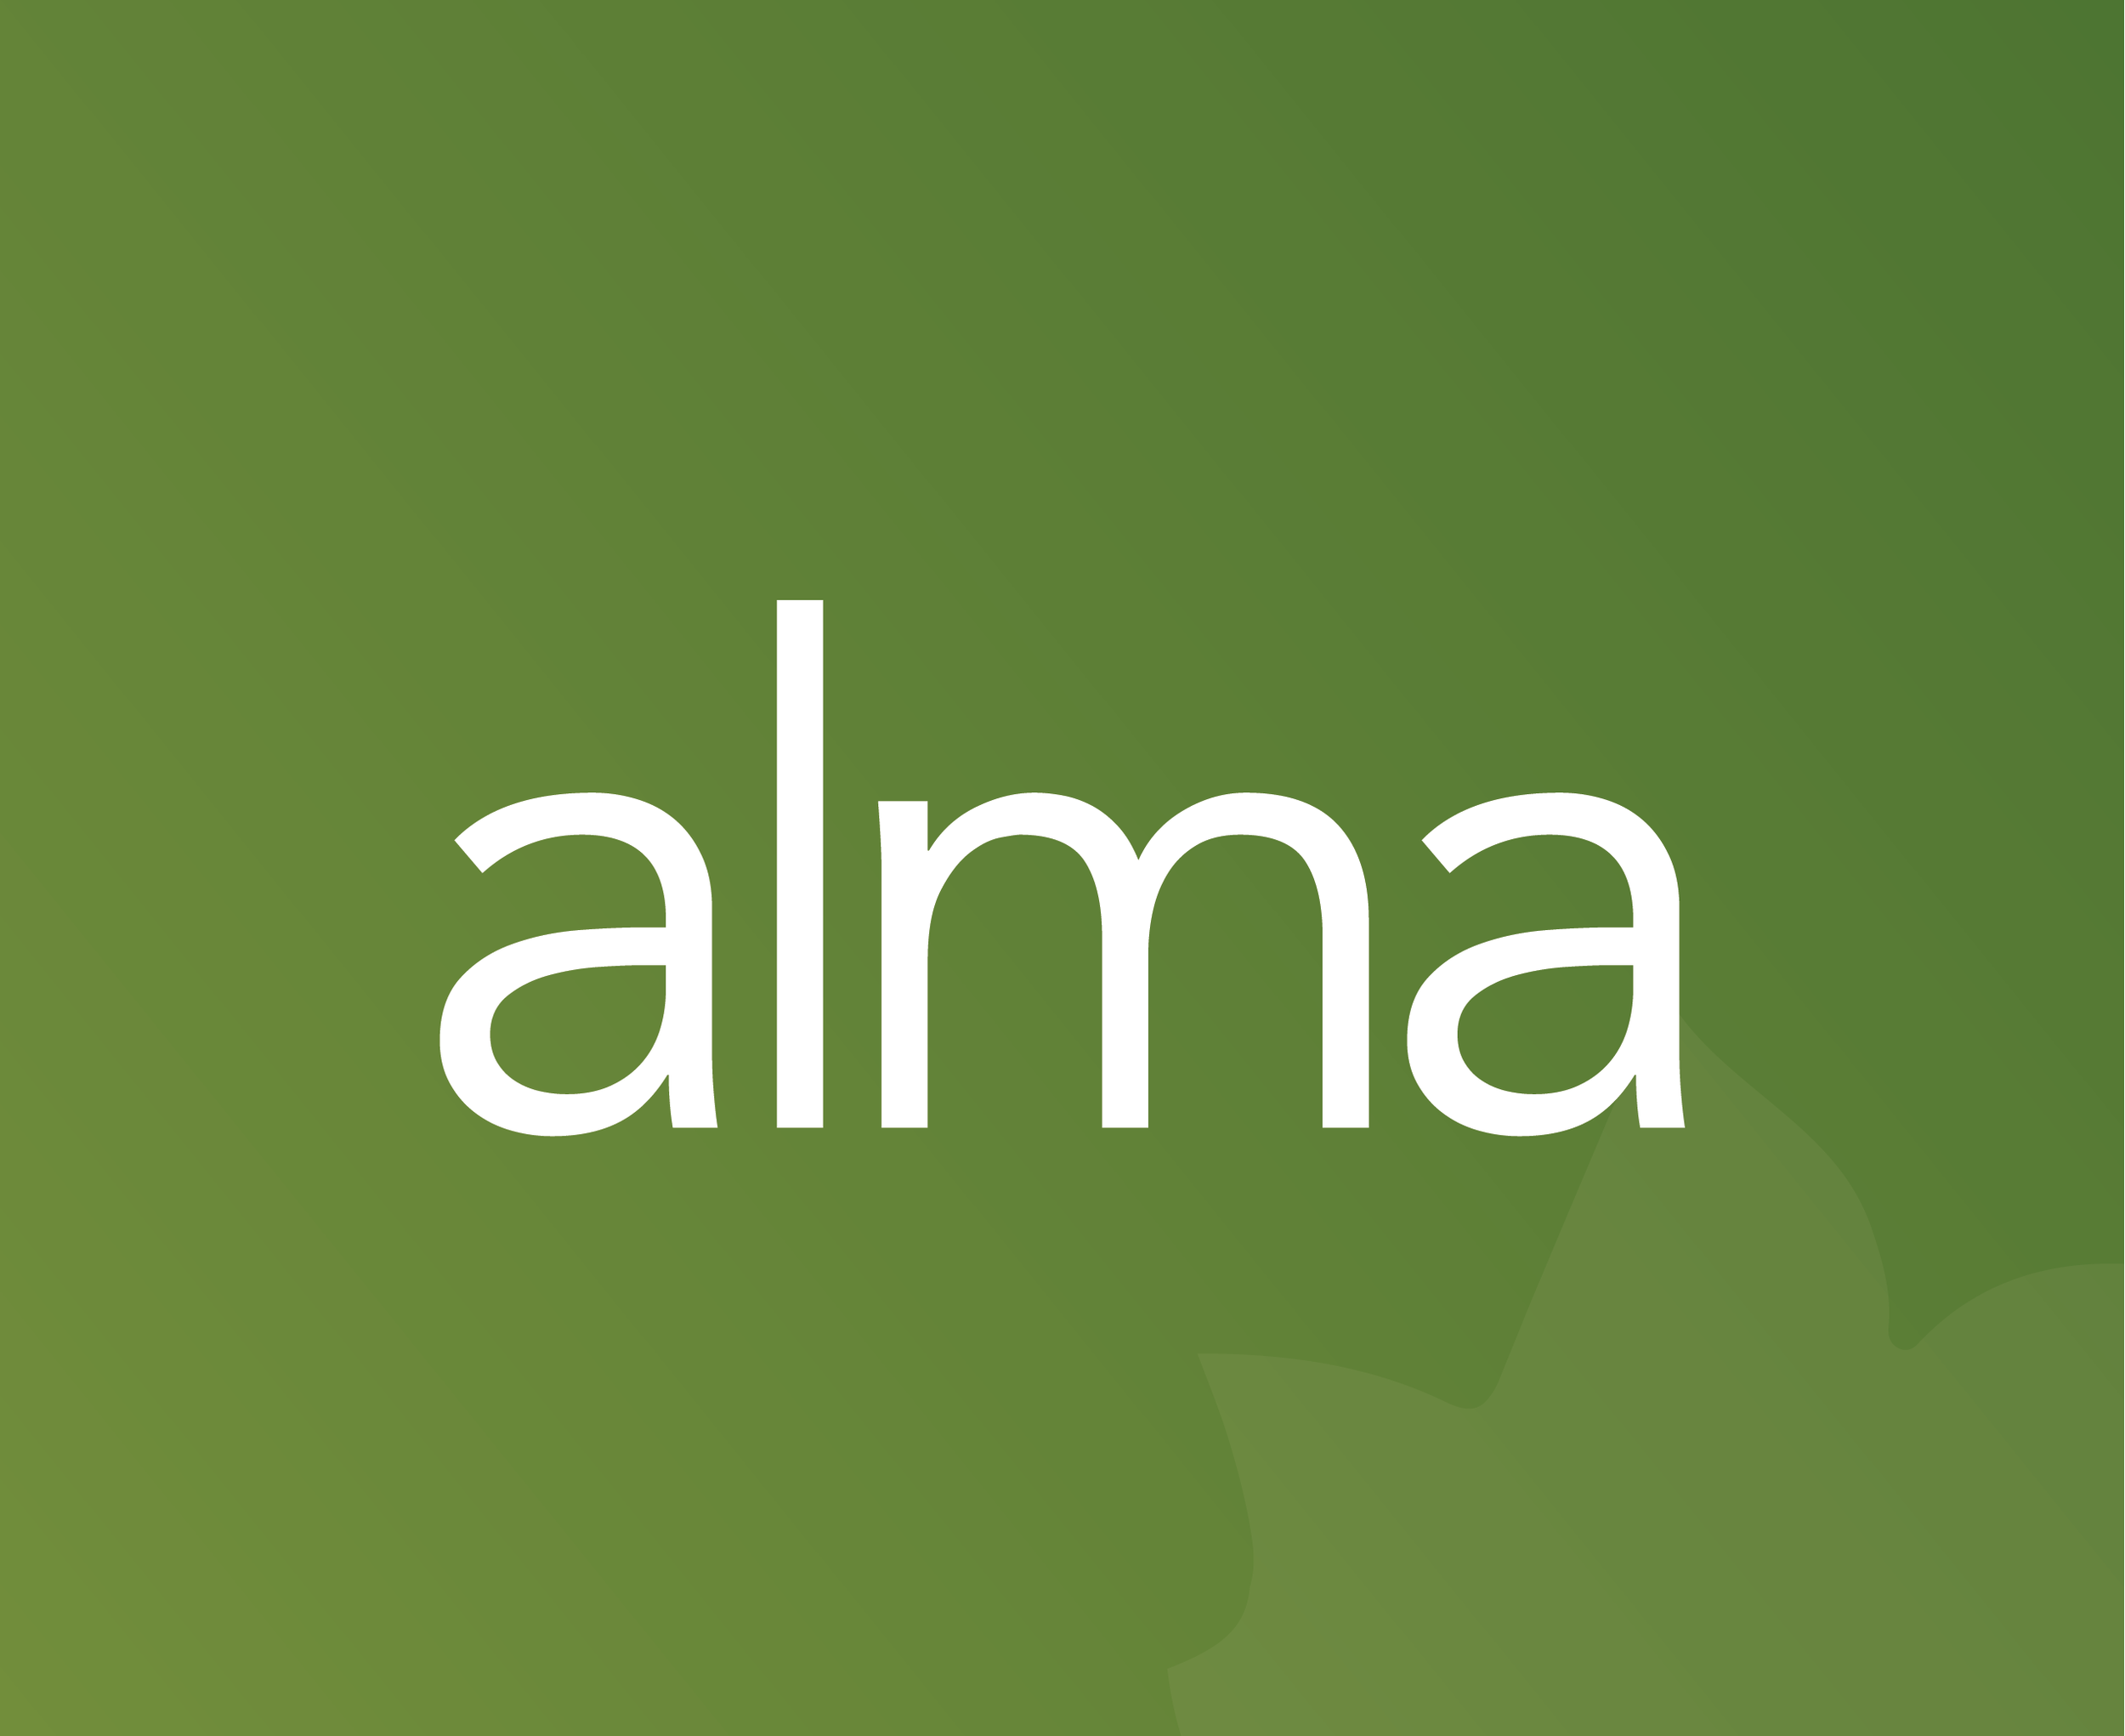 Alma Program - $925 a month, one year investmentOur Alma Membership is designed for the seasoned professional in need of permanent office space. Included is a spacious office with 180 square feet (15x12) with floor to ceiling windows. Almas are allowed the freedom to outfit, furnish, and decorate their offices to fit their needs and design aesthetic. Almas also receive unlimited access to the common areas and the Event Atrium to host events, workshops, seminars, or any professional or personal gathering based on availability without a fee. If you are an established professional looking for a private suite and event space in the heart of West Knoxville, this is the program for you!